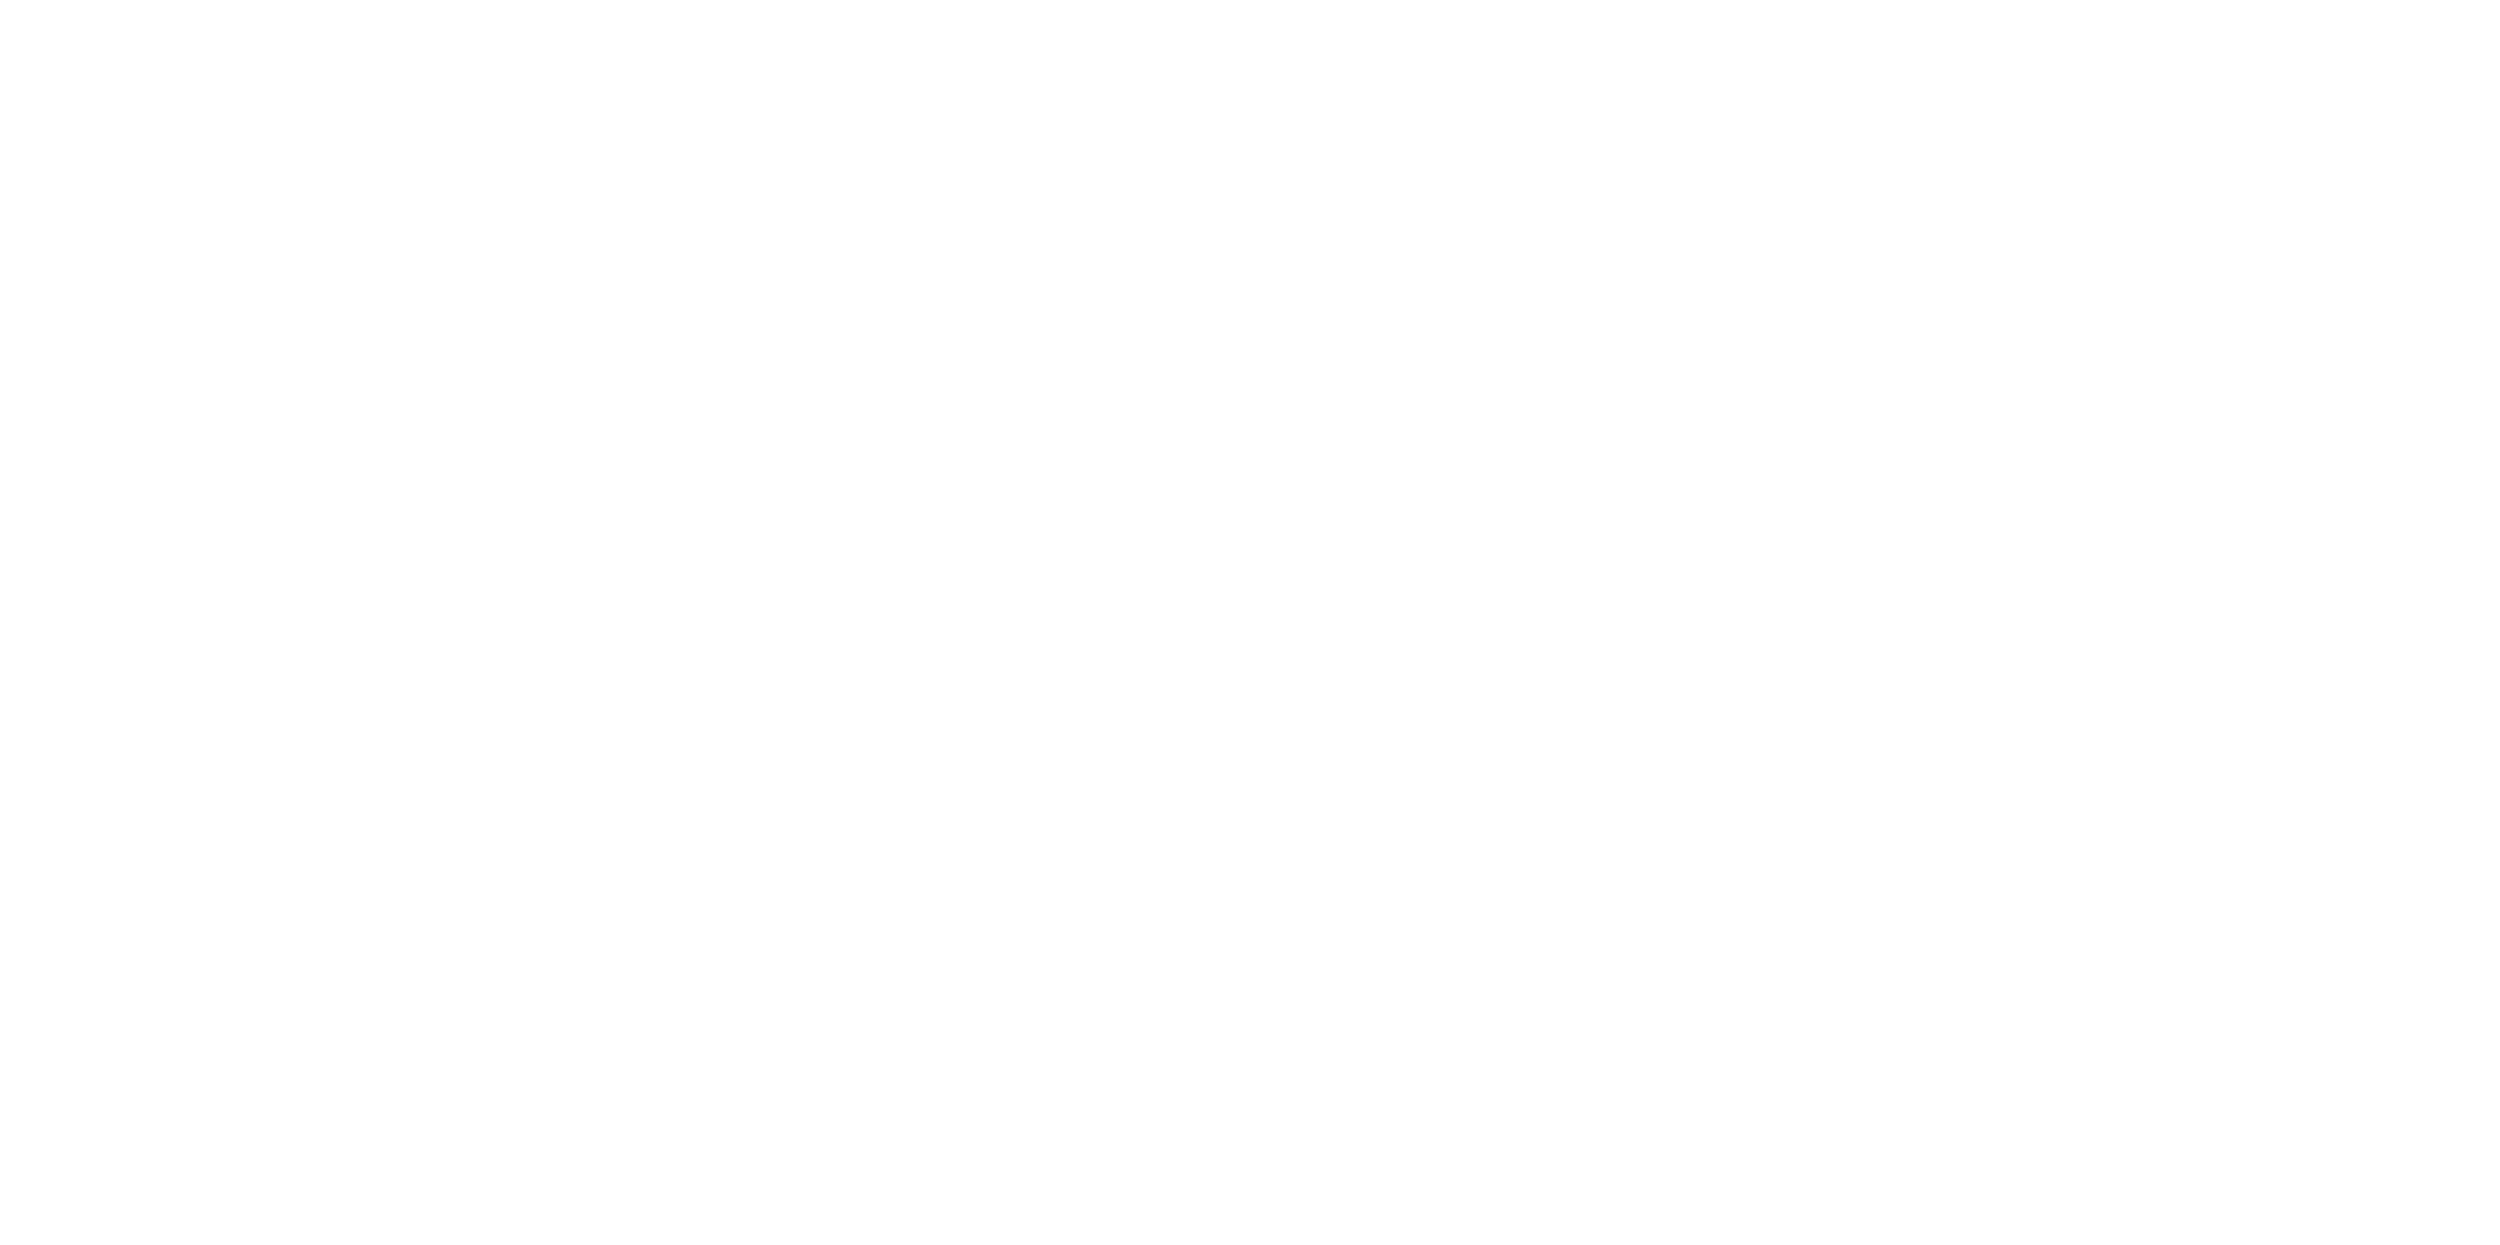 The_One_Club_for_Creativity-One_Show_ADC-logo_black.png